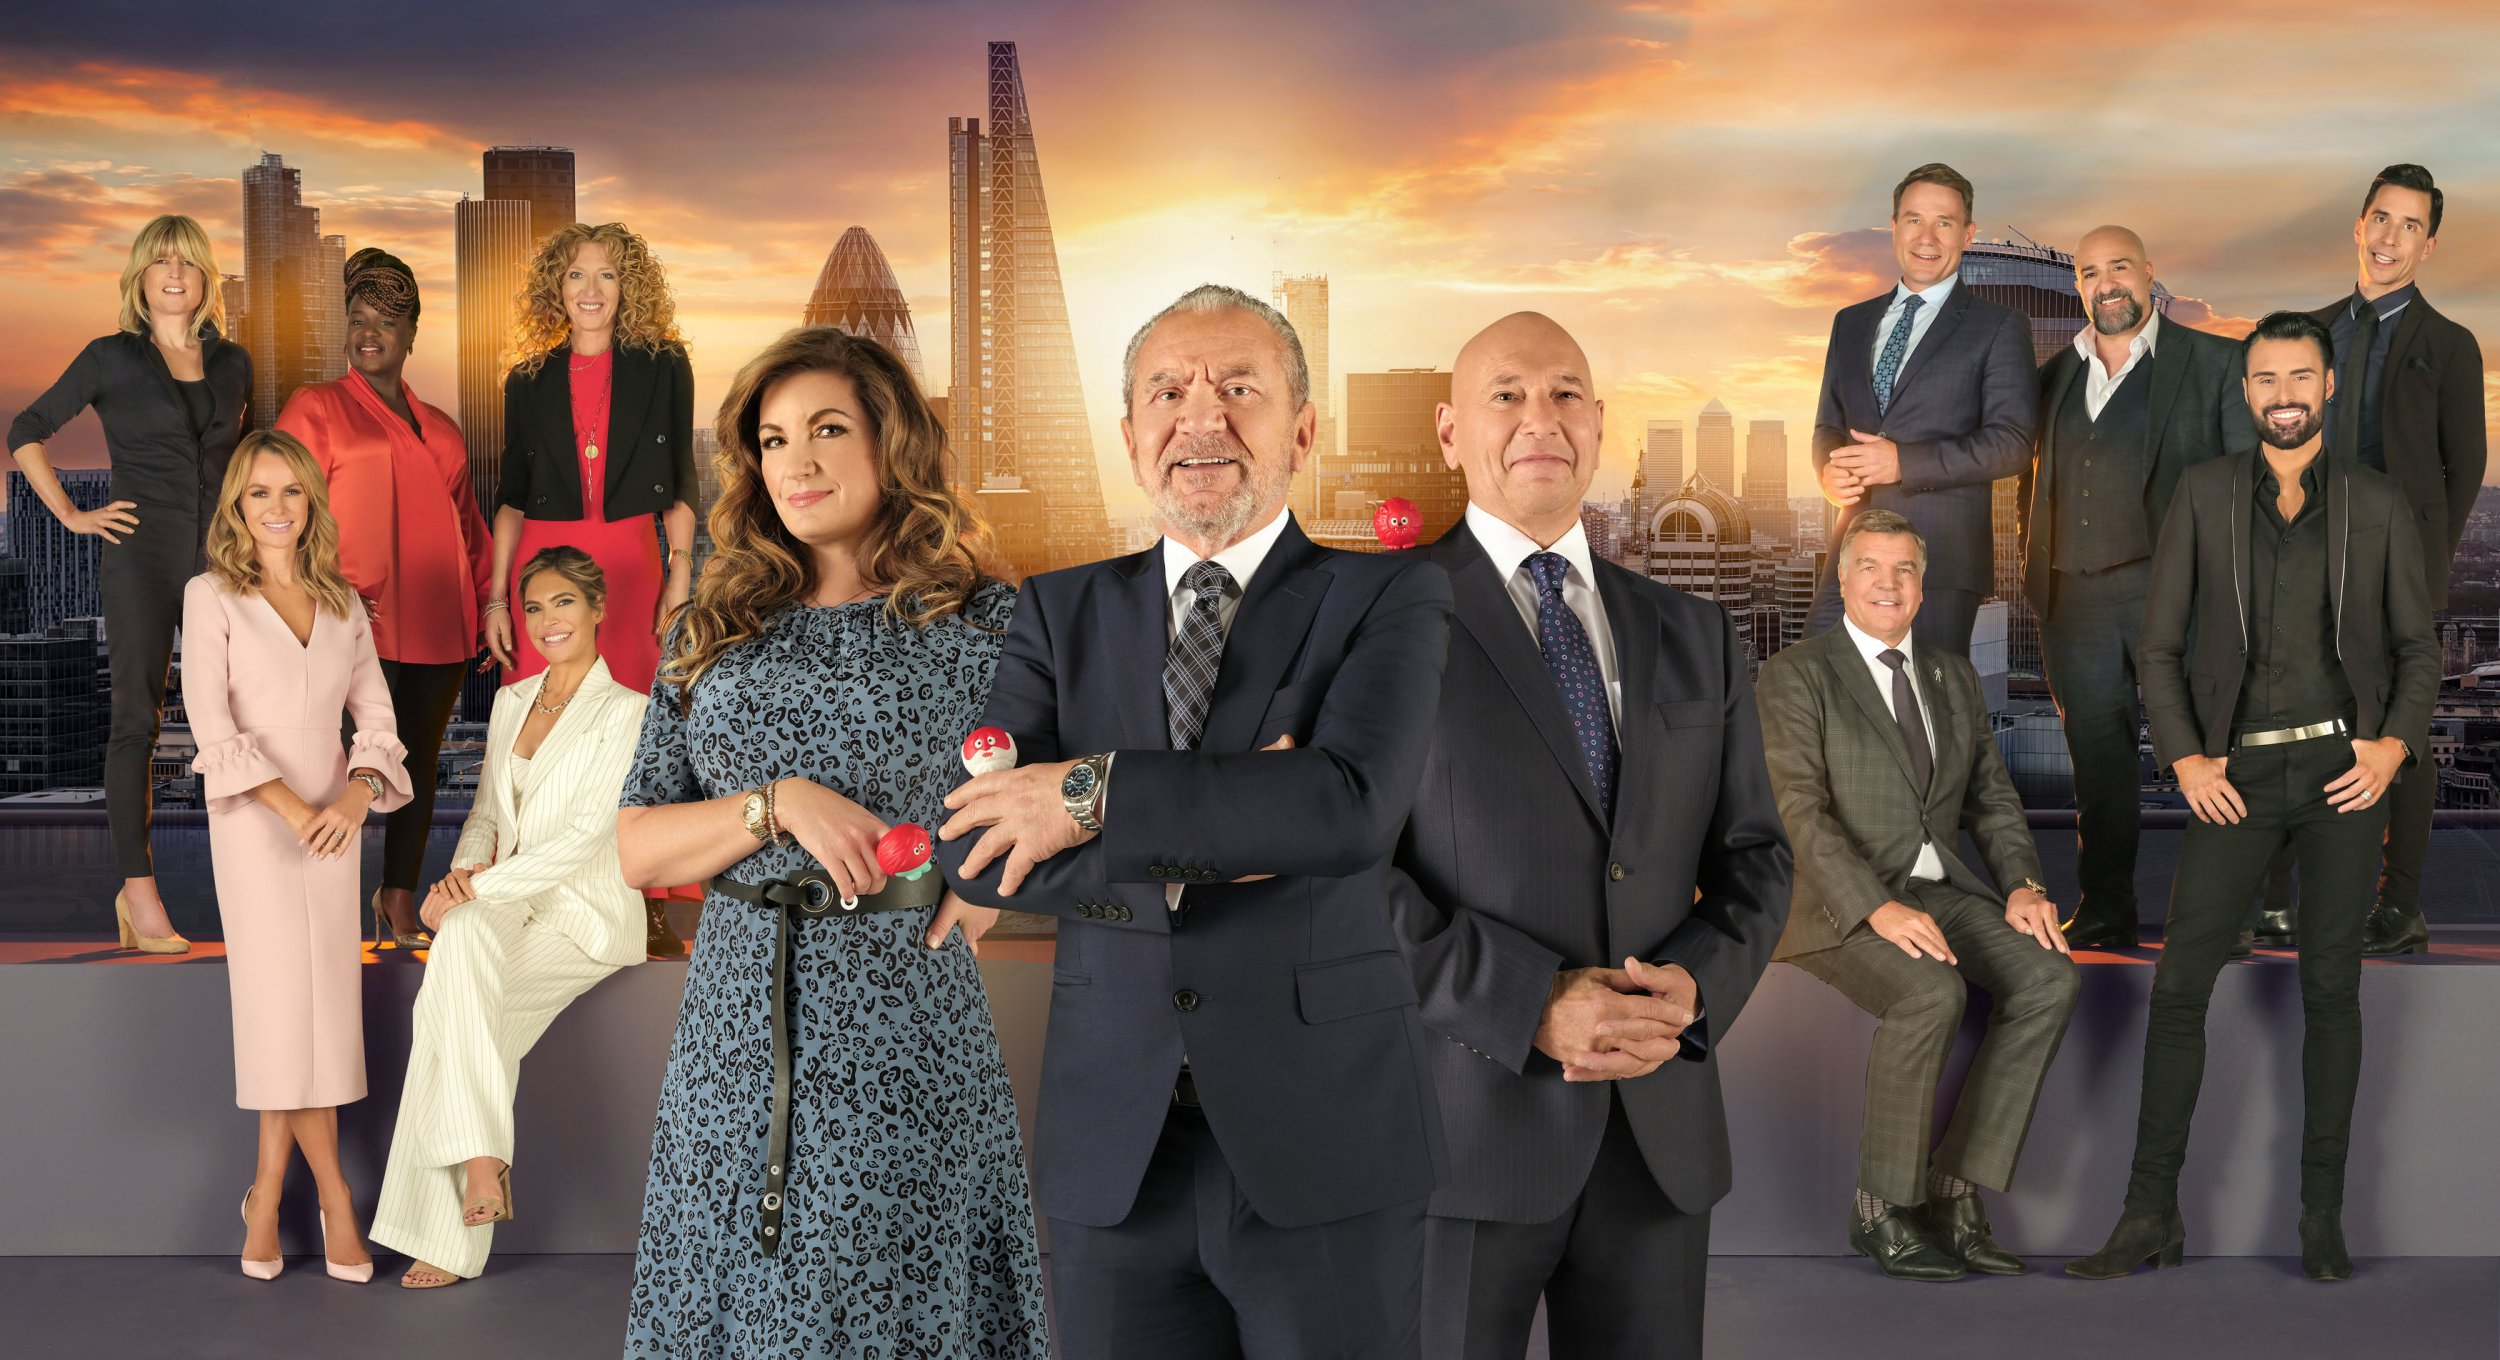 Lord Alan Sugar reveals stars turned down Comic Relief's Celebrity Apprentice despite being a 'charitable event'